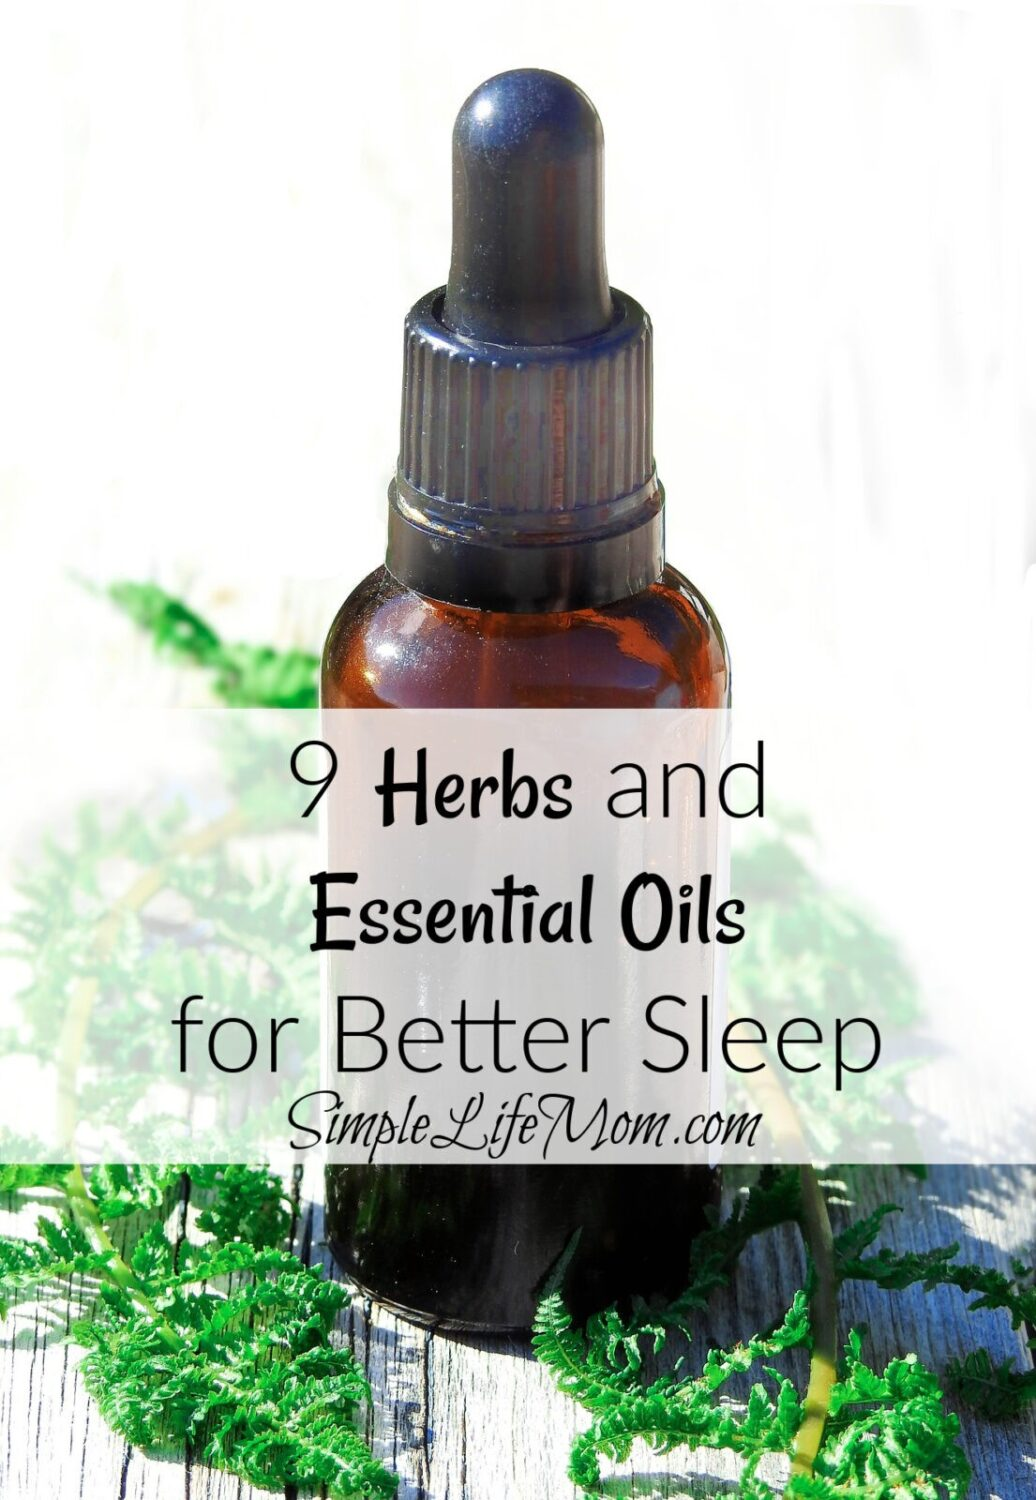 9 Herbs and Essential Oils for Better Sleep